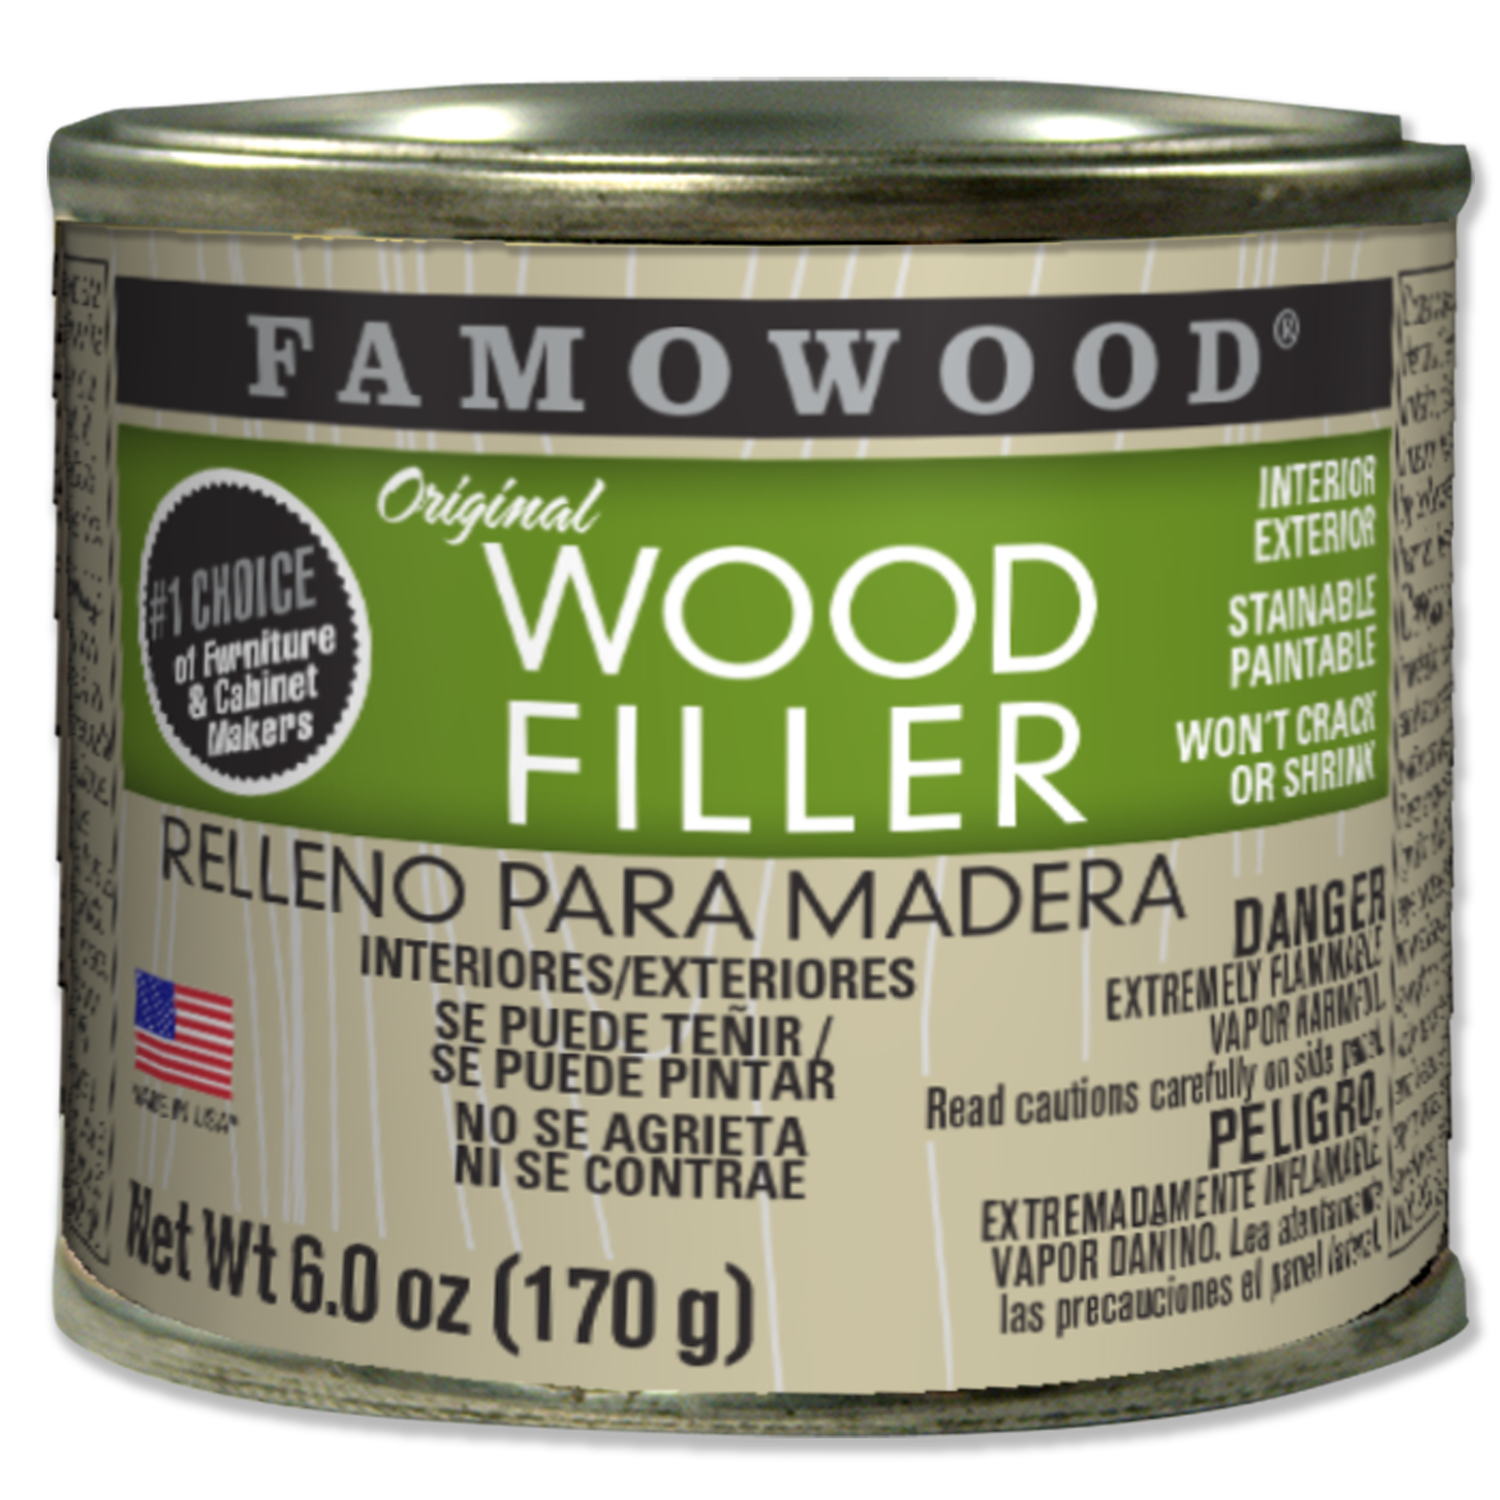 Famowood Red Oak Wood Filler 6 ...  sc 1 st  Ace Hardware & Famowood Red Oak Wood Filler 6 oz. - Ace Hardware